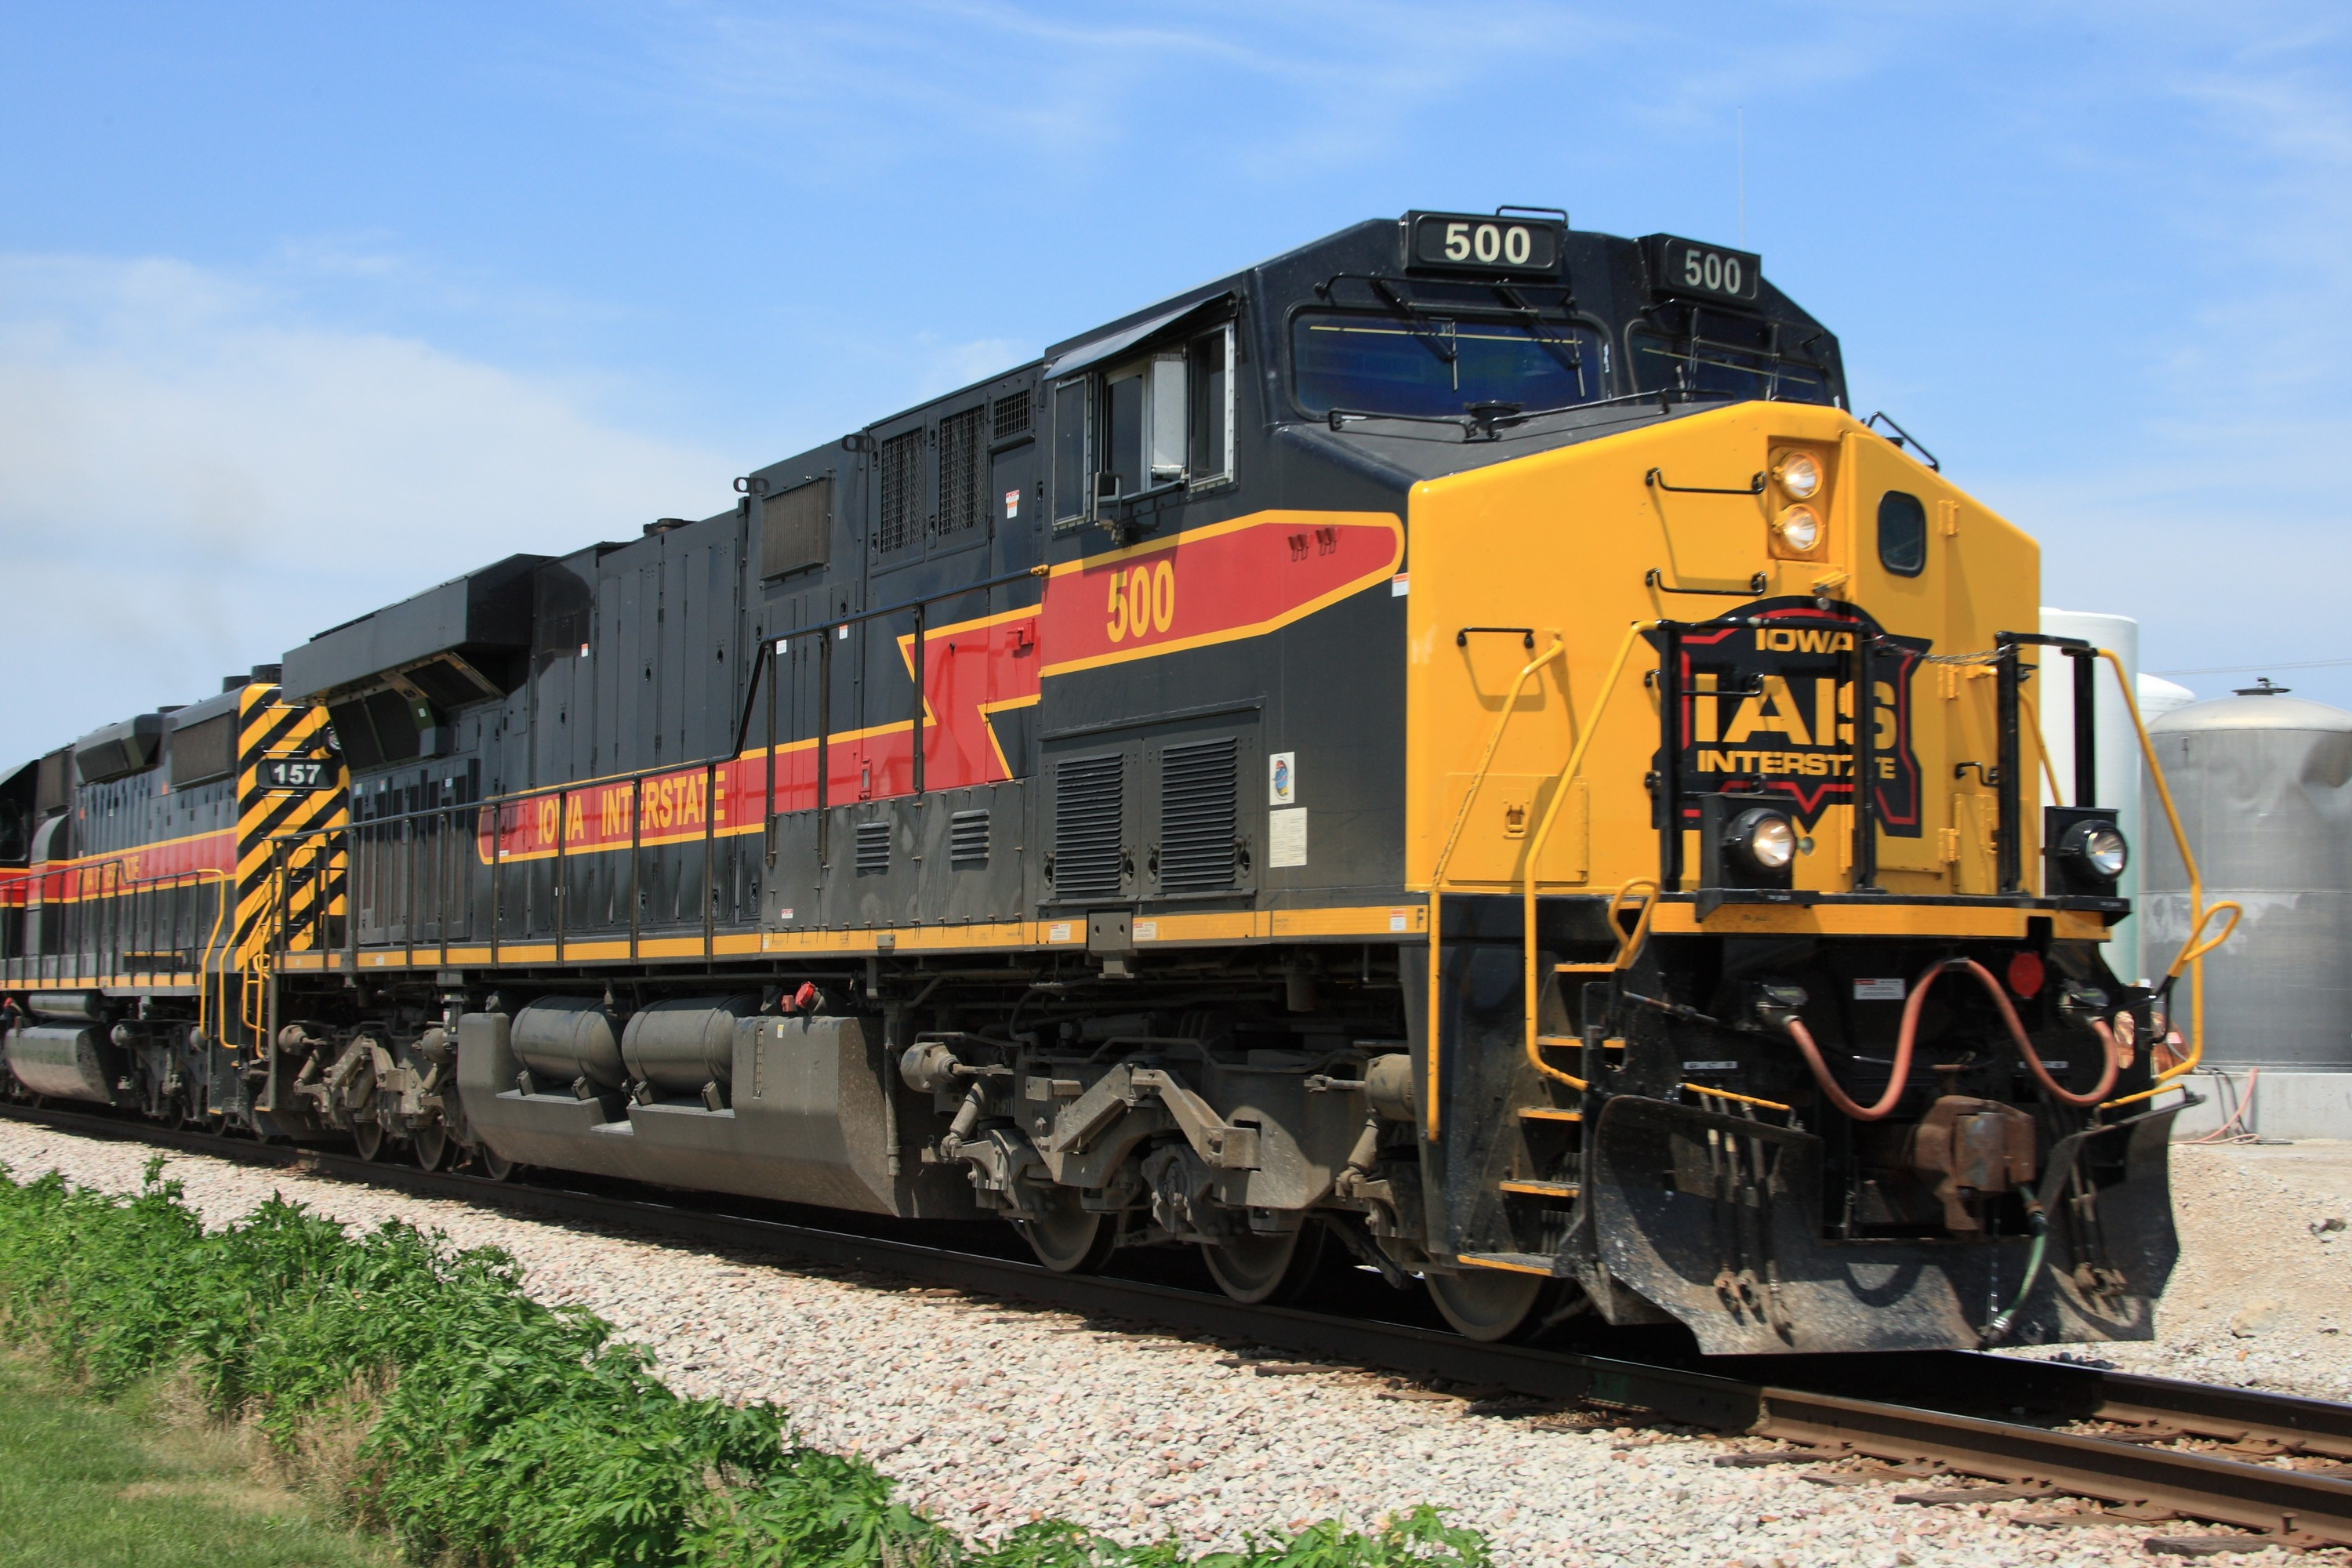 500 at Walcott, IA, on 21 Jul 2011